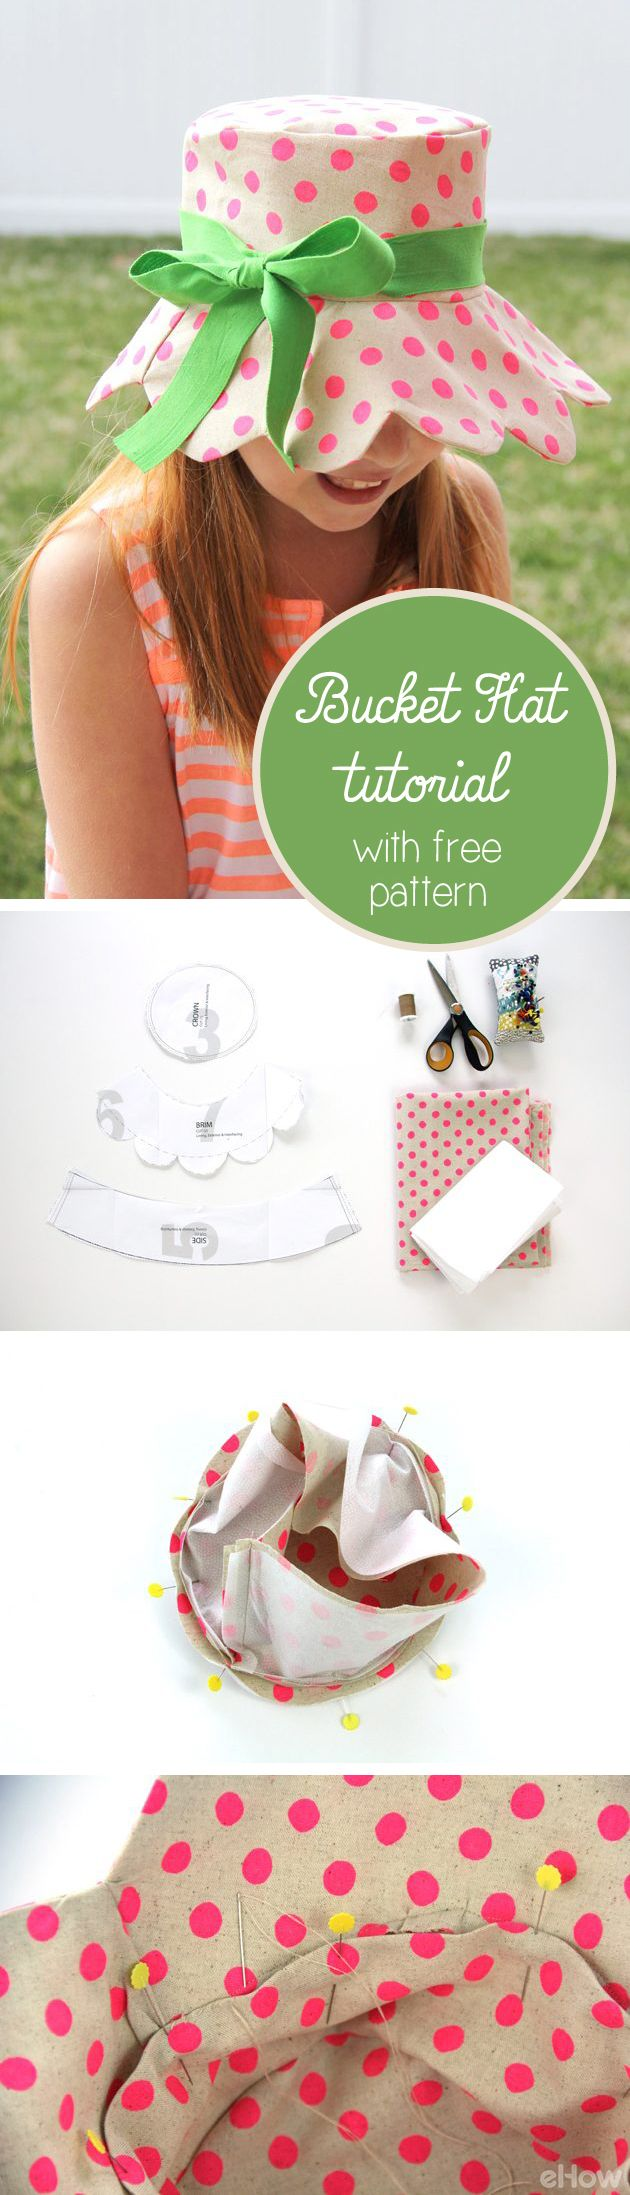 Free pattern included in this bucket hat tutorial! Perfect for summer picnics and outings, you're going to love to sport your handmade scalloped brim edge bucket hat everywhere. Print the pattern and get the DIY instructions here: http://www.ehow.com/how_5850012_make-bucket-hat.html?utm_source=pinterest.com&utm_medium=referral&utm_content=inline&utm_campaign=fanpage